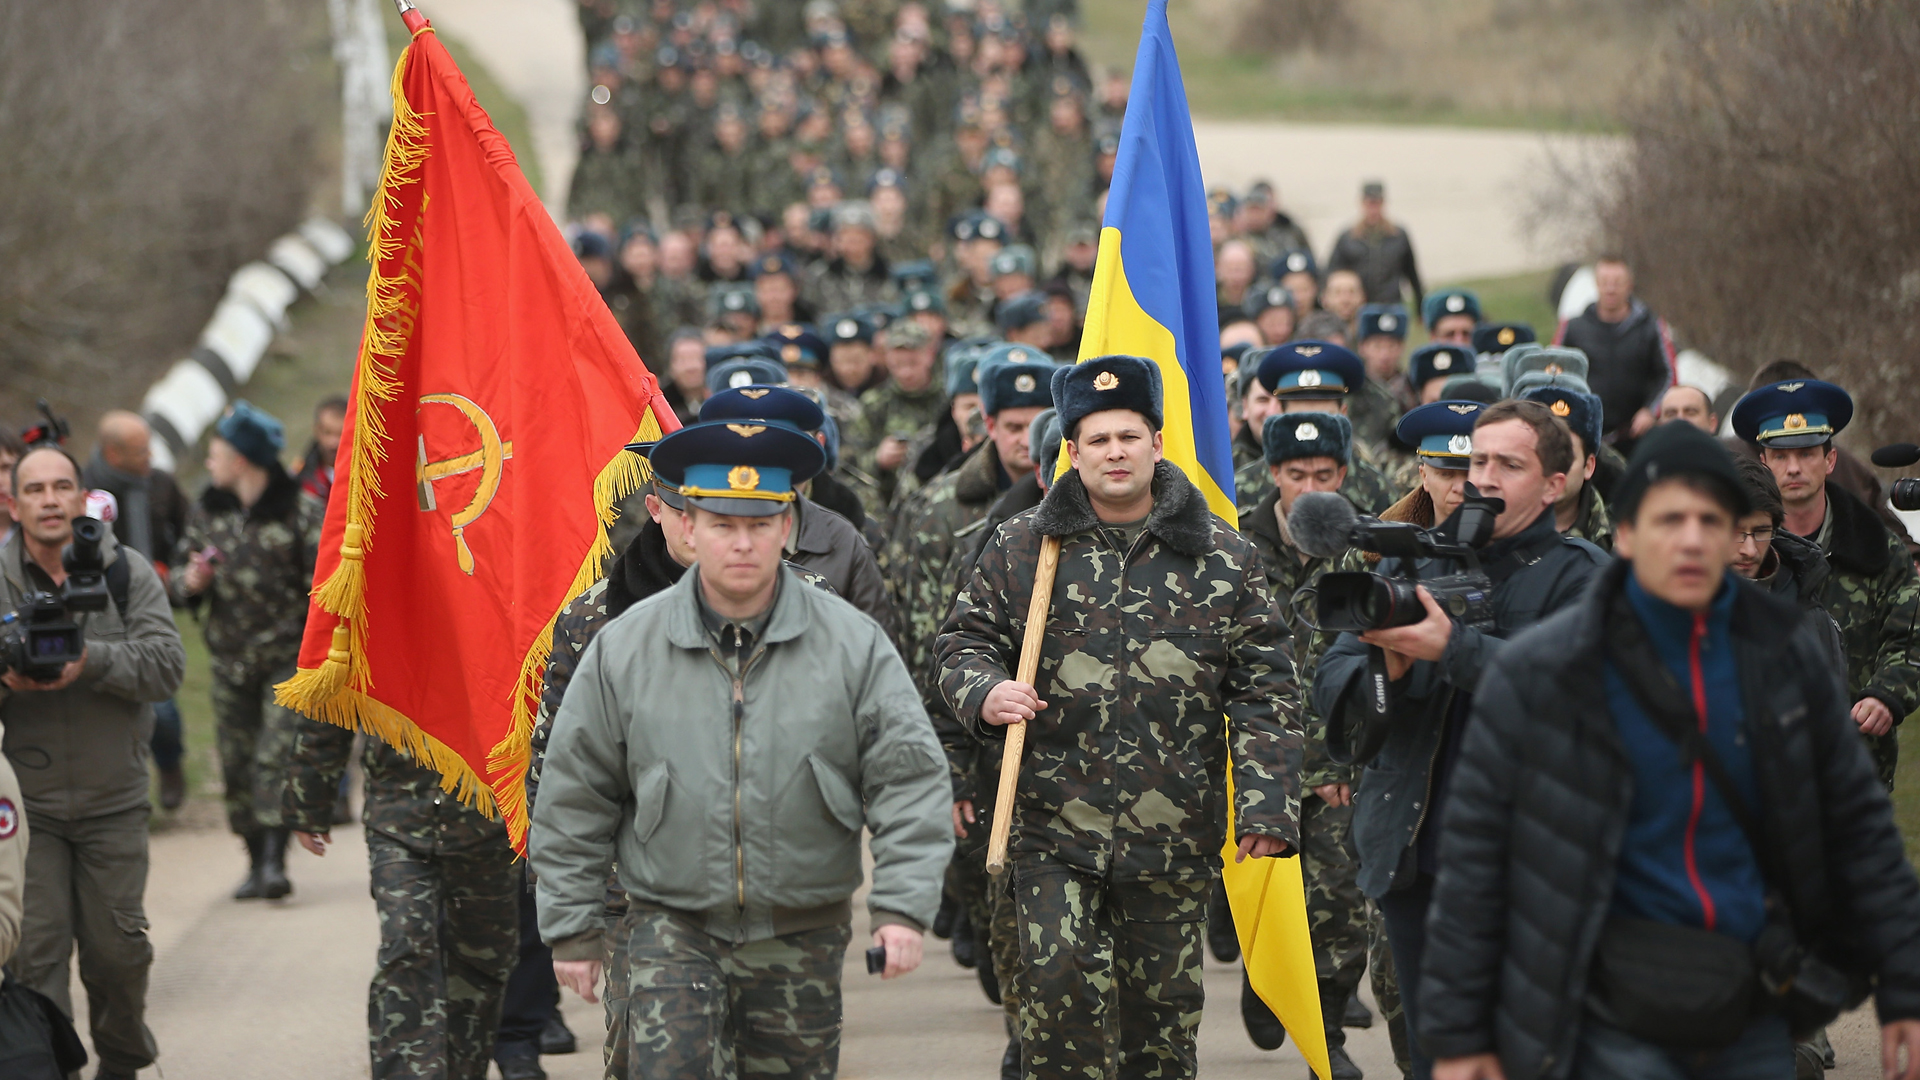 Colonel Yuli Mamchor, commander of the Ukrainian military garrison at the Belbek airbase, and his troops, march behind both the Ukraine flag and a Soviet Red Army flag. Continued sympathy for the former Soviet Union among the masses of the Ukraine and Russia means that even bourgeois, anti-working class forces like the Ukrainian and Russian militaries sometimes use Soviet symbols in order to gain acceptance. (Sean Gallup/Getty Images)